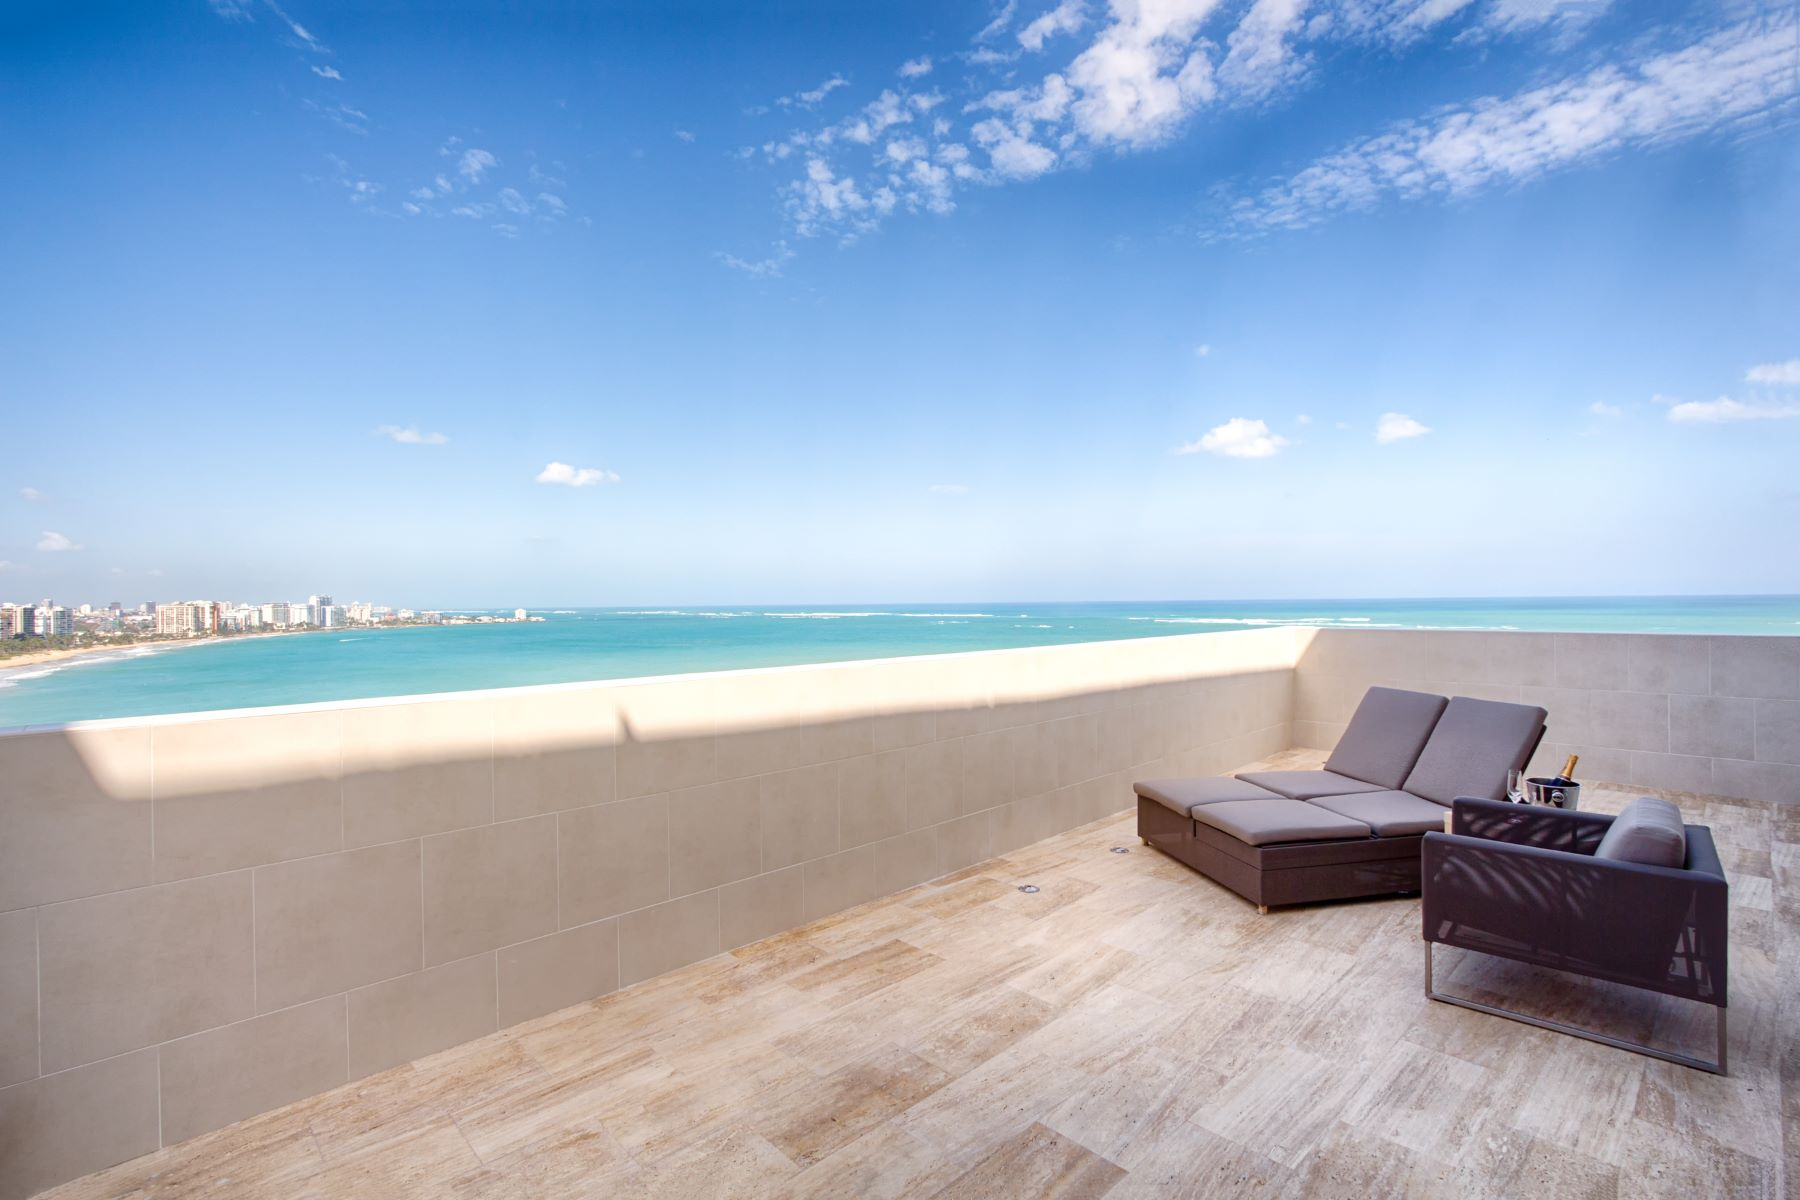 Duplex for Sale at The Ultimate Beach Penthouse 6165 Isla Verde Ave. PH Carolina, Puerto Rico 00979 Puerto Rico